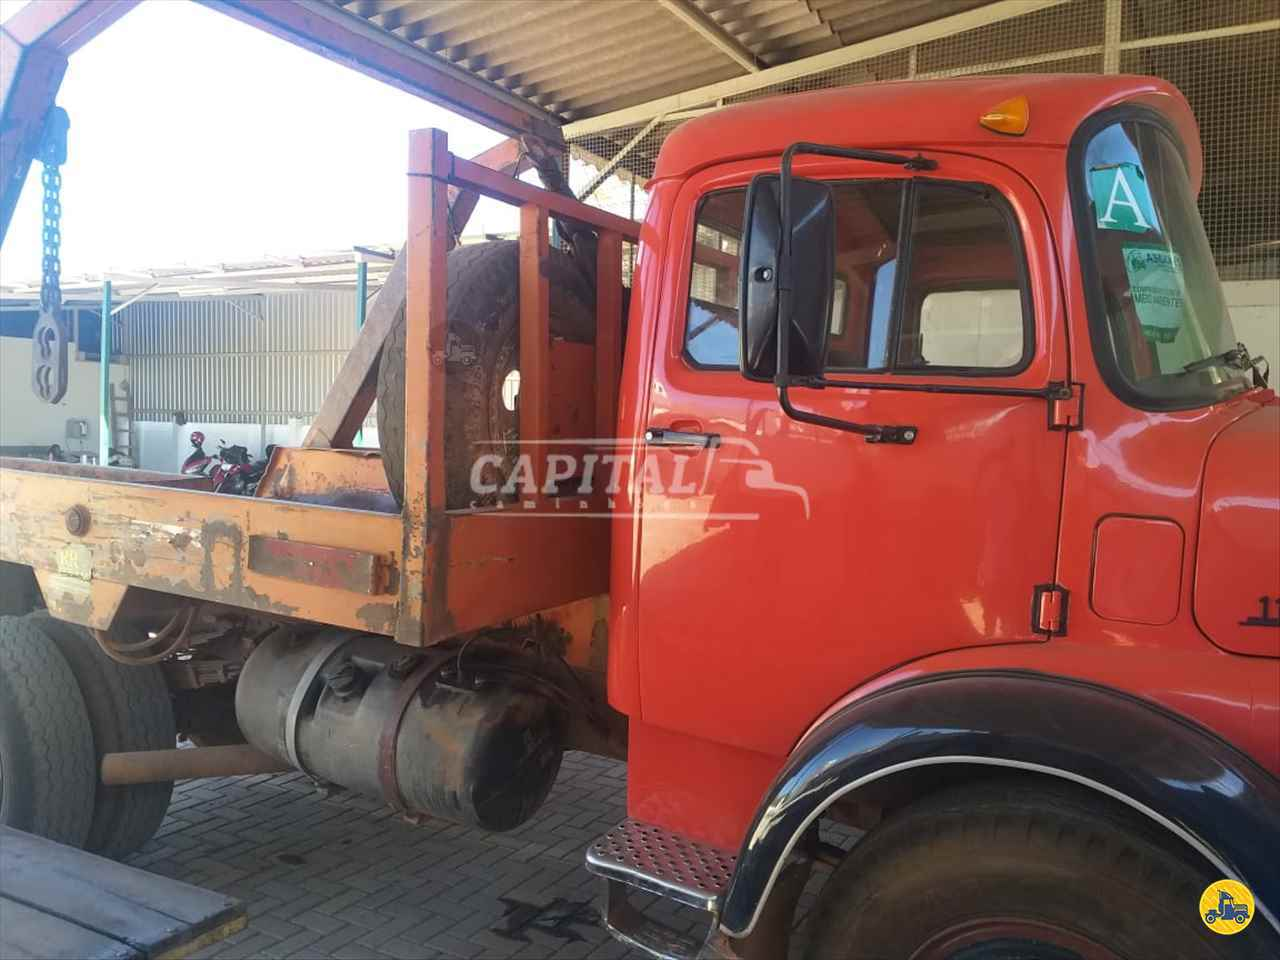 MERCEDES-BENZ MB 1113 00000km 1985/1985 Capital Caminhões - Metalesp e Recrusul